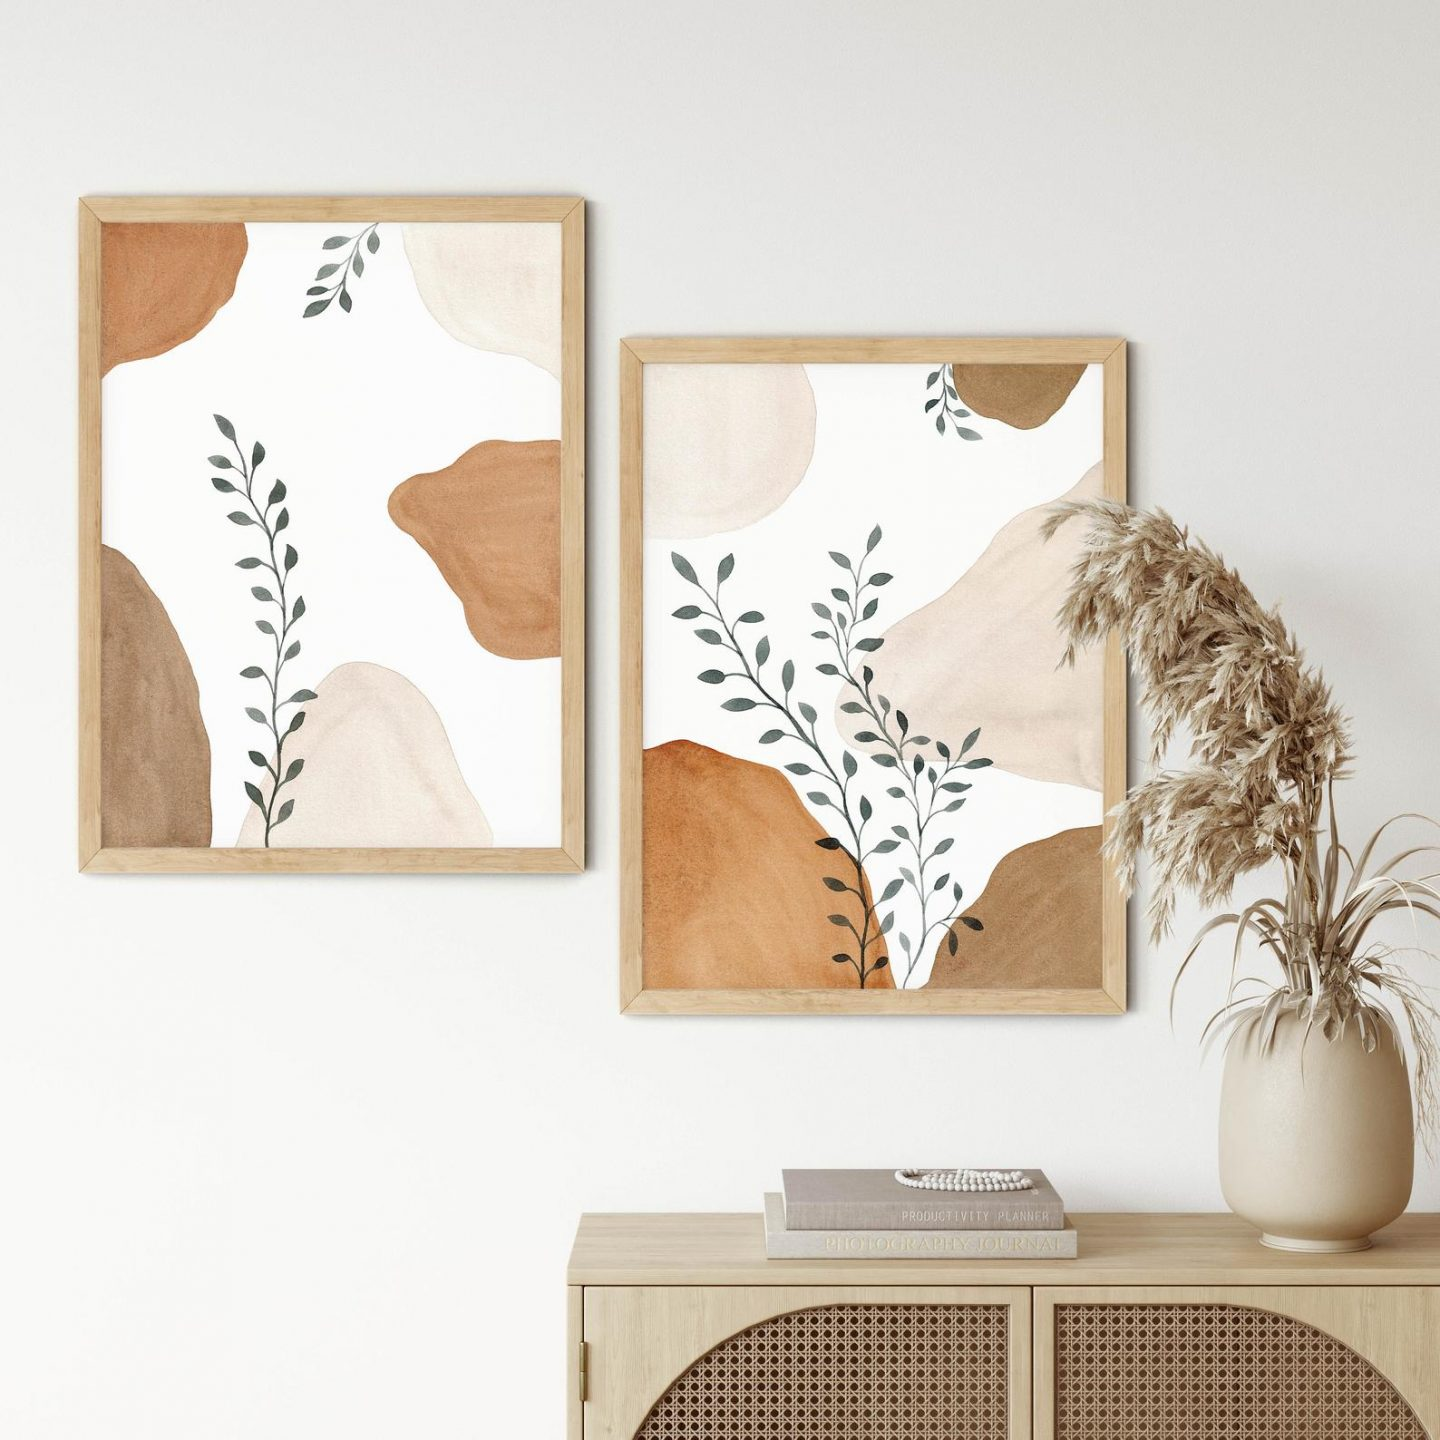 Peaceful bohemian wall art with leaves